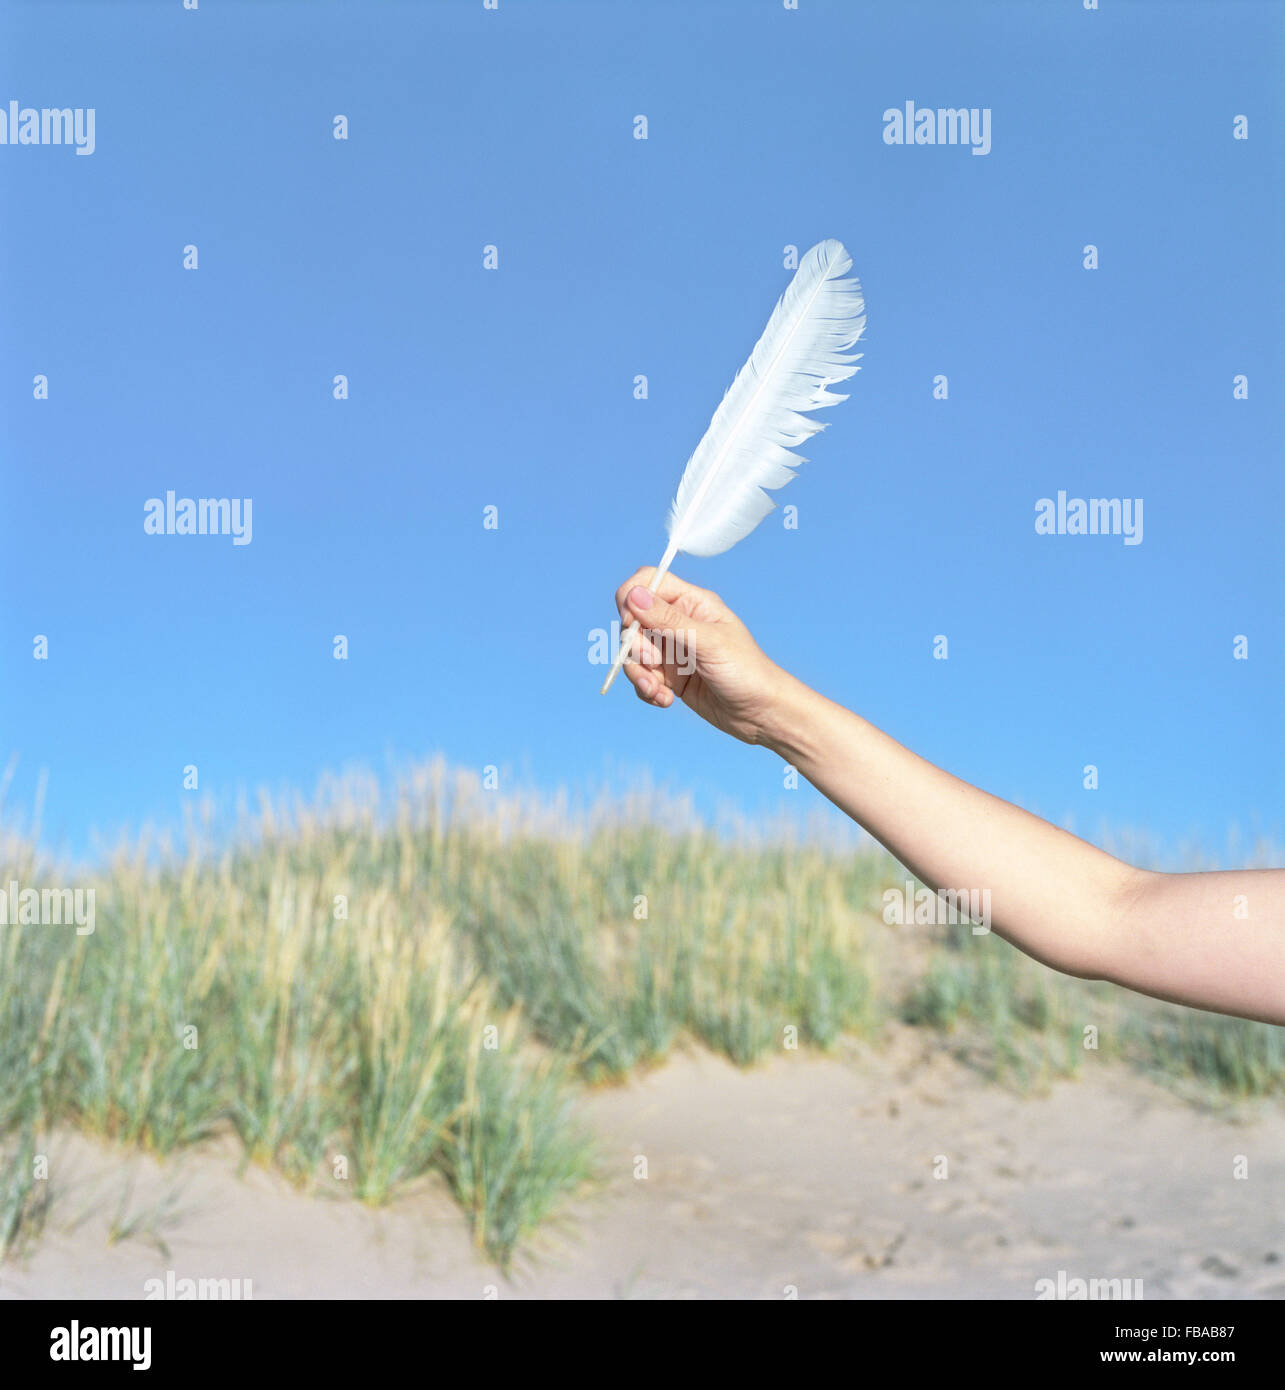 Finland, Pori, Yyteri, Close-up of woman's hand with feather on beach Stock Photo